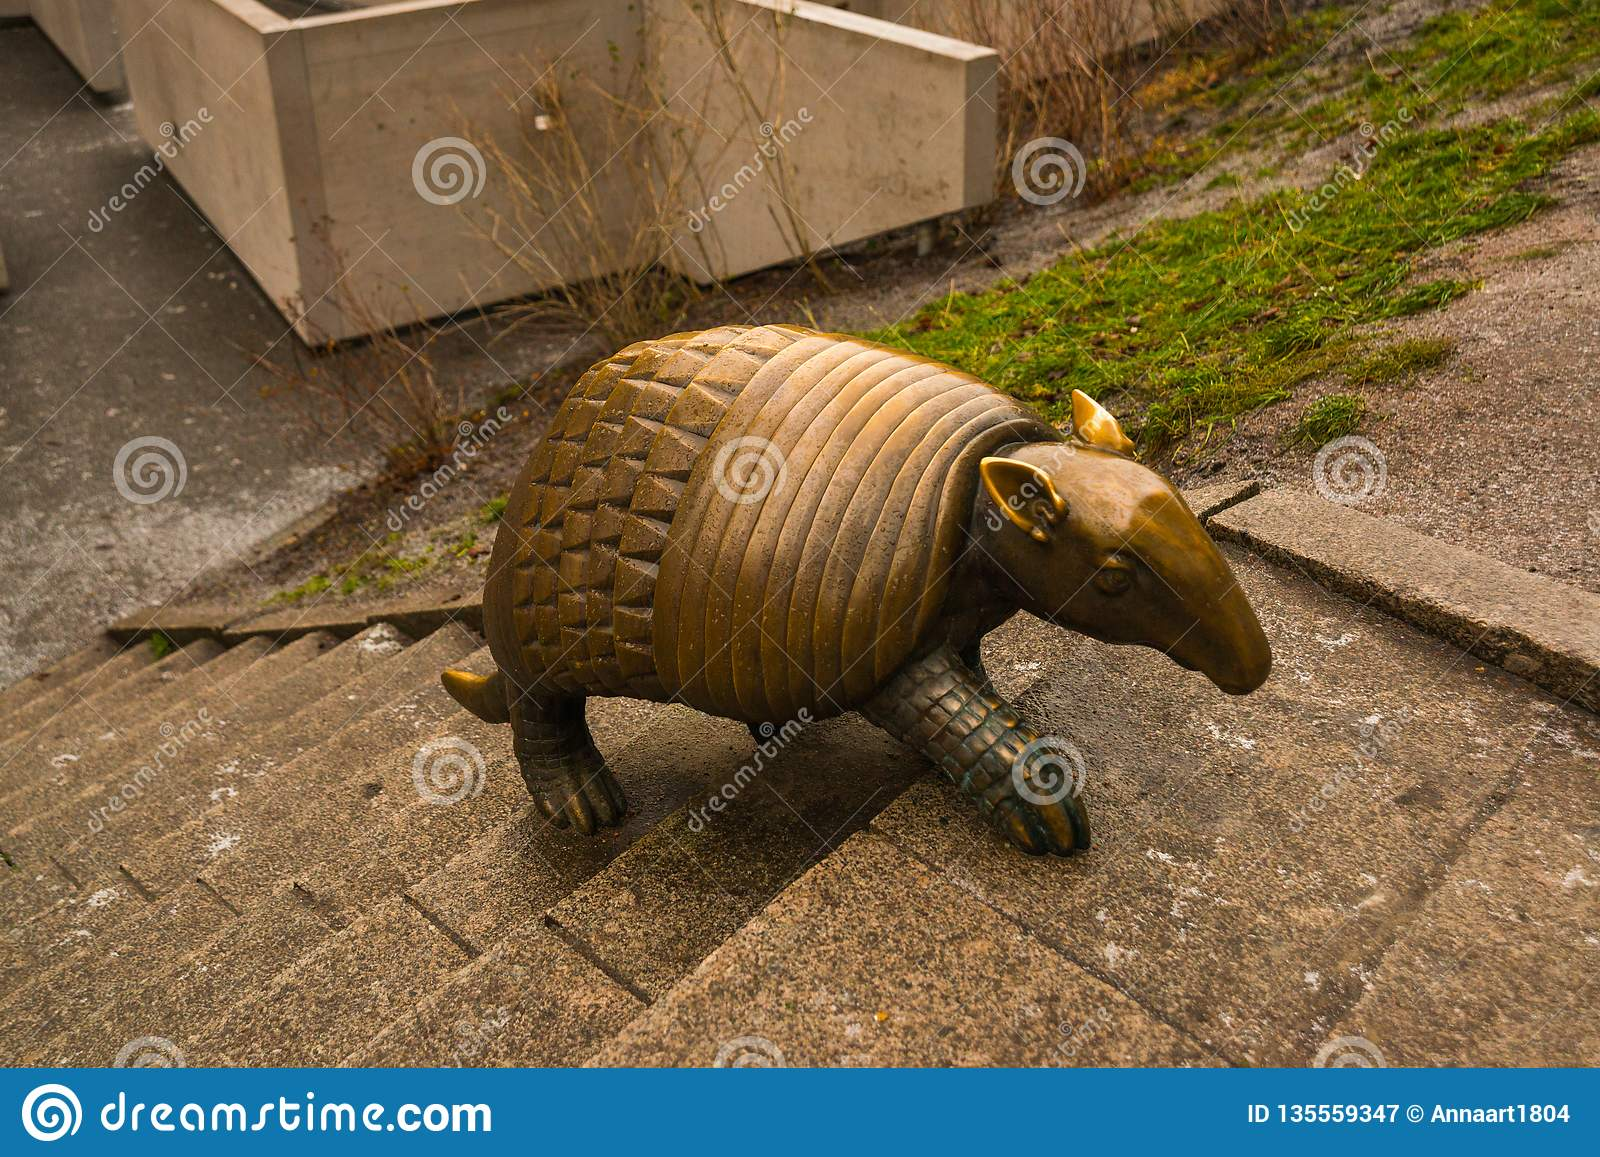 Riga Latvia Armadillo Statue By Liene Mackus At The Children S Playground Labyrinth Stock Image Image Of Fauna Gray 135559347